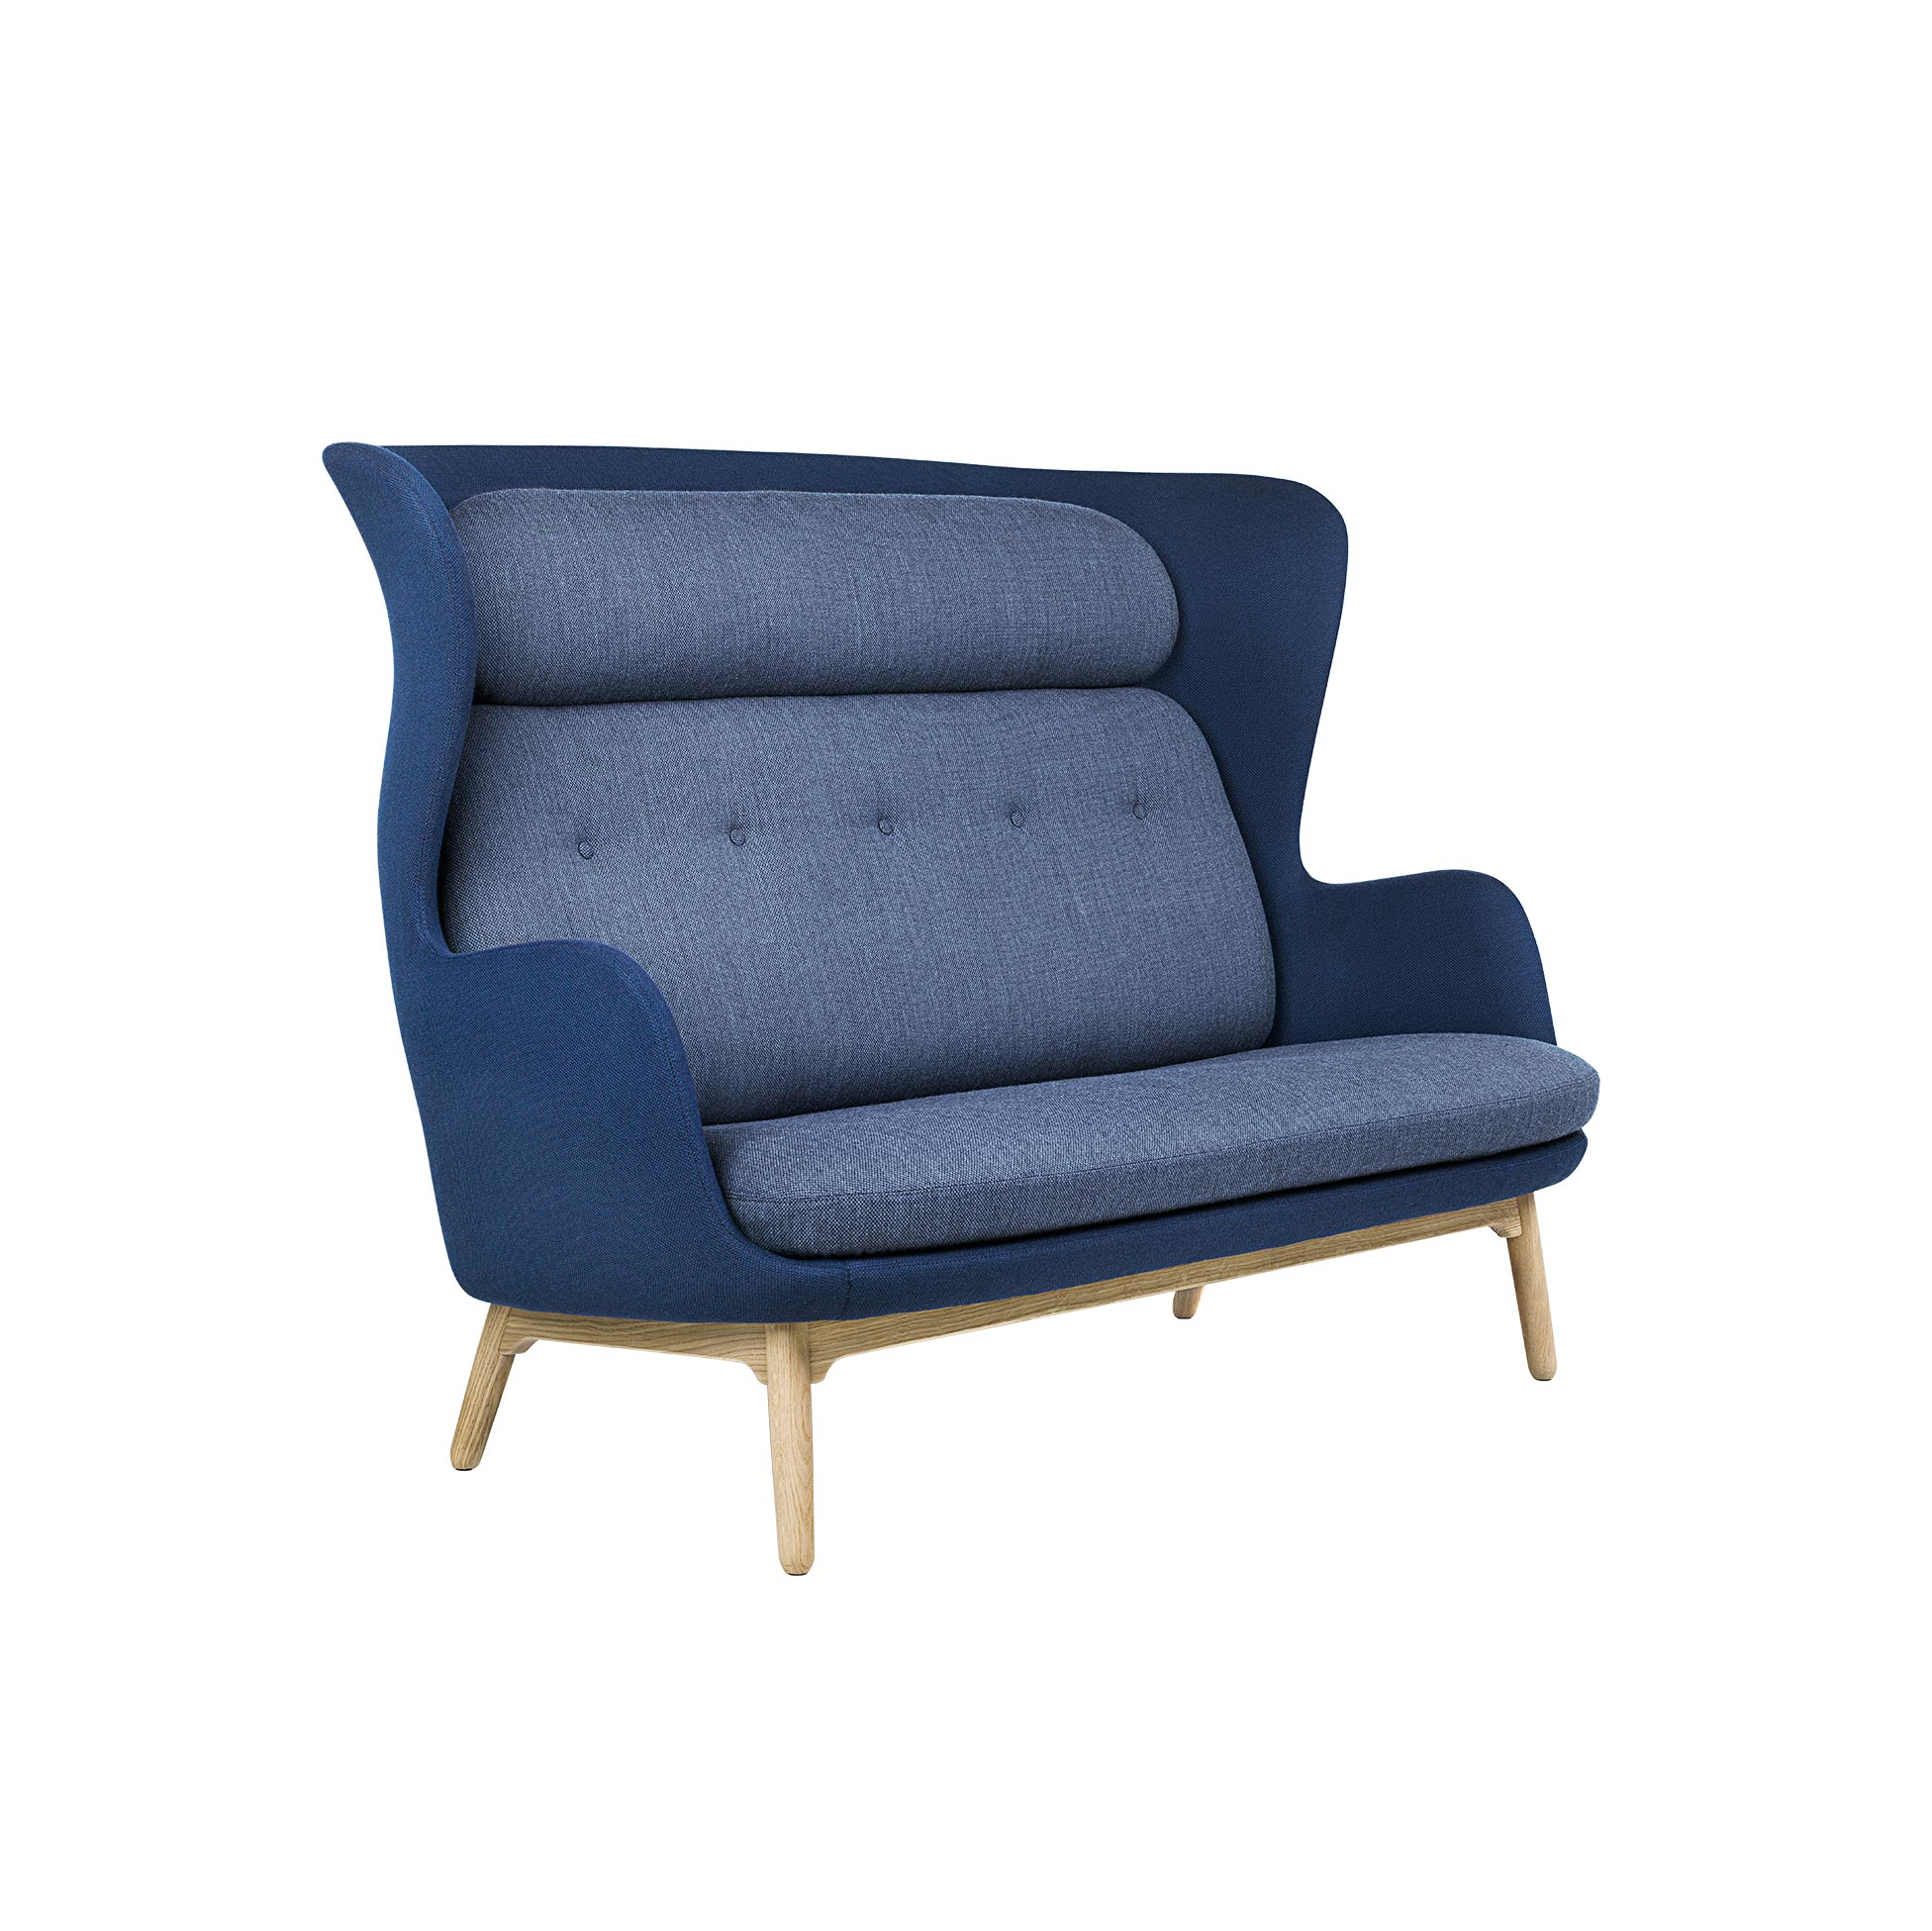 Ro Sofa - <p>Jaime Hayon's successful sofa Ro™ now fits two at a time. We introduce Ro as a 2-seater sofa - still accompanied by the curvy characteristics and playful, colourful expression found in Jaime Hayon's design philosophy. With the Ro™ Sofa, softness is expressed as a social setting for two - or for four when placed one in front of another - offering a unique feeling of privacy but with plenty of space at the same time. The Ro™ Sofa is perfect for any open office environment or other spaces that have the need for a breakout area or a room division. The Ro chair's distinct, sculptural shape has been interpreted in the Ro™ Sofa version and the two now make up a small unified collection. Despite its high back, the Ro™ Sofa is warm and welcoming and has a cosy appearance, whilst at the same time it offers the possibility of an enclosing, intimate space built for privacy. The Ro™ Sofa comes fully upholstered in in a wide range of fabrics. Single fabric or a mix of 2 fabrics; one fabric for the shell and one for the cushions. The base consists of 4 legs in brushed aluminium and it is also available with a wooden base in solid oak with a clear lacquer finish. A range of materials, colours and finishes are available in a number of combinations. Prices may vary. Please enquire for full details.</p>